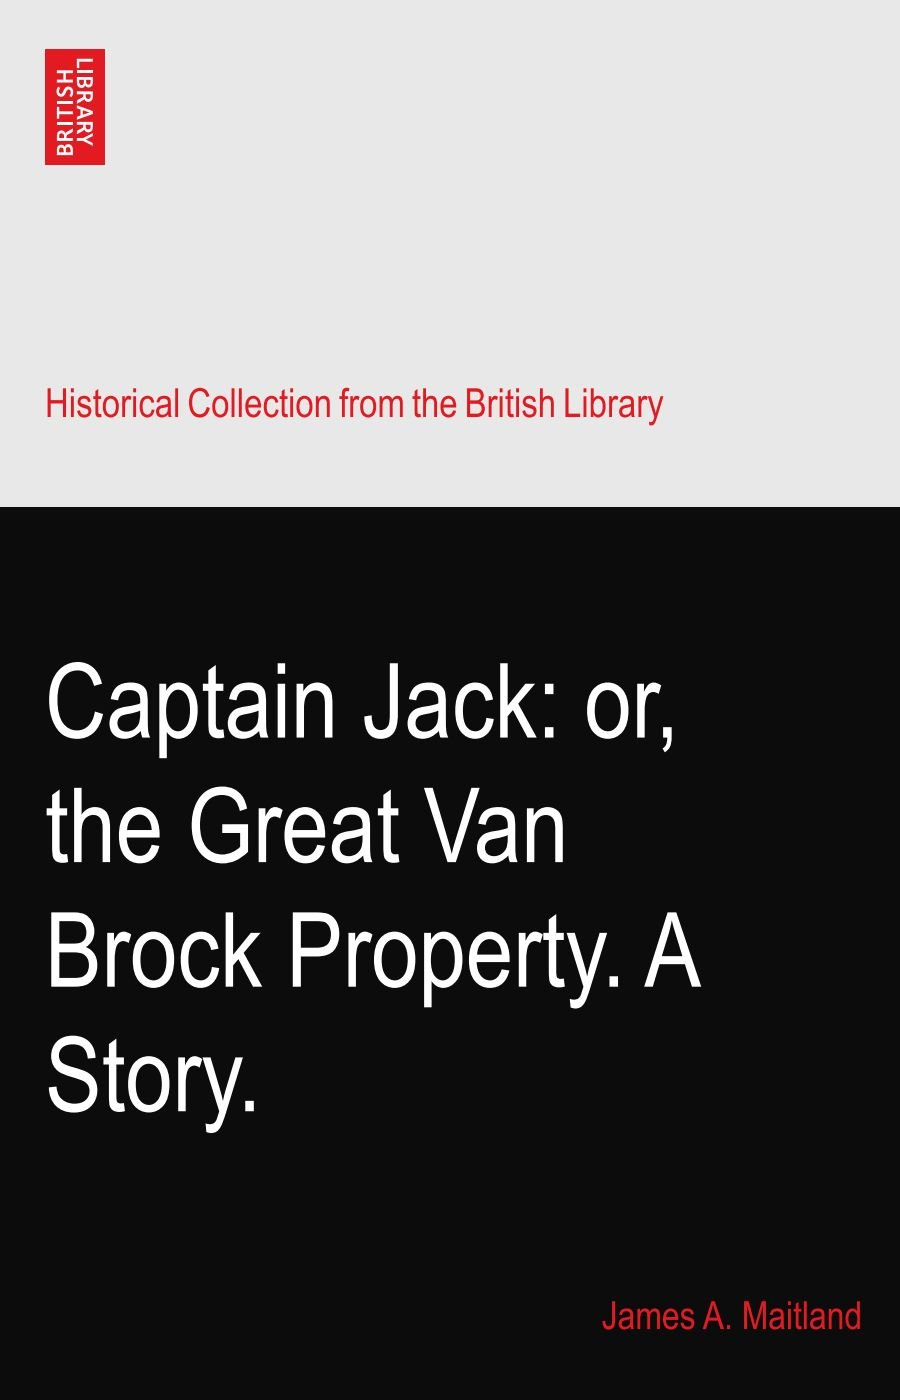 Download Captain Jack: or, the Great Van Brock Property. A Story. PDF